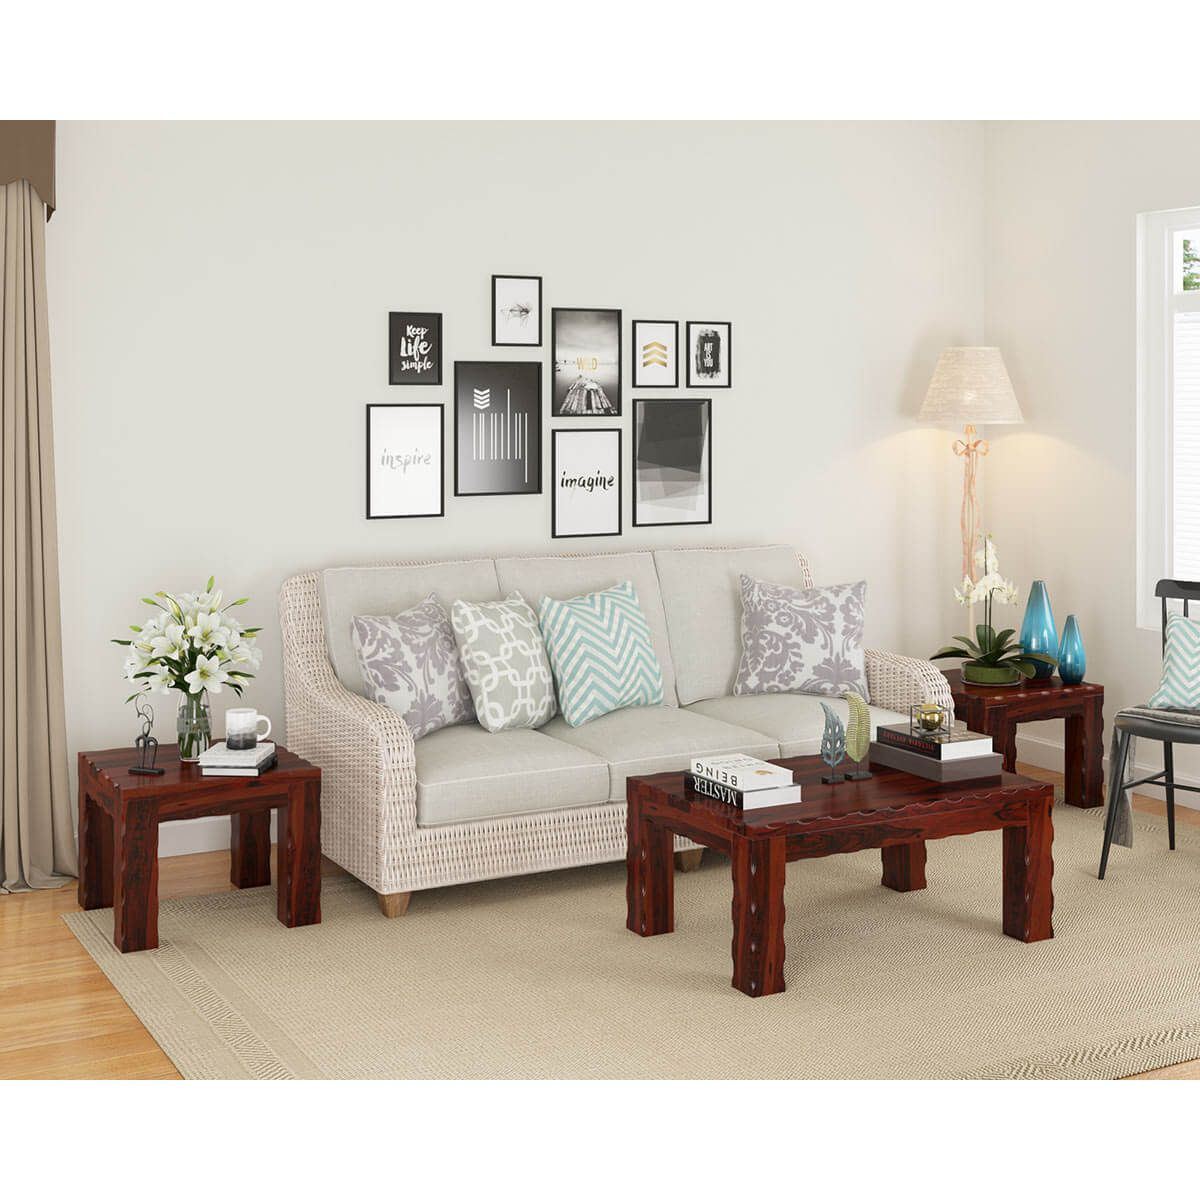 Yakima Rustic Solid Wood 3 Piece Coffee Table Set In 2021 Transitional Style Living Room 3 Piece Coffee Table Set Coffee Table Setting [ 1200 x 1200 Pixel ]